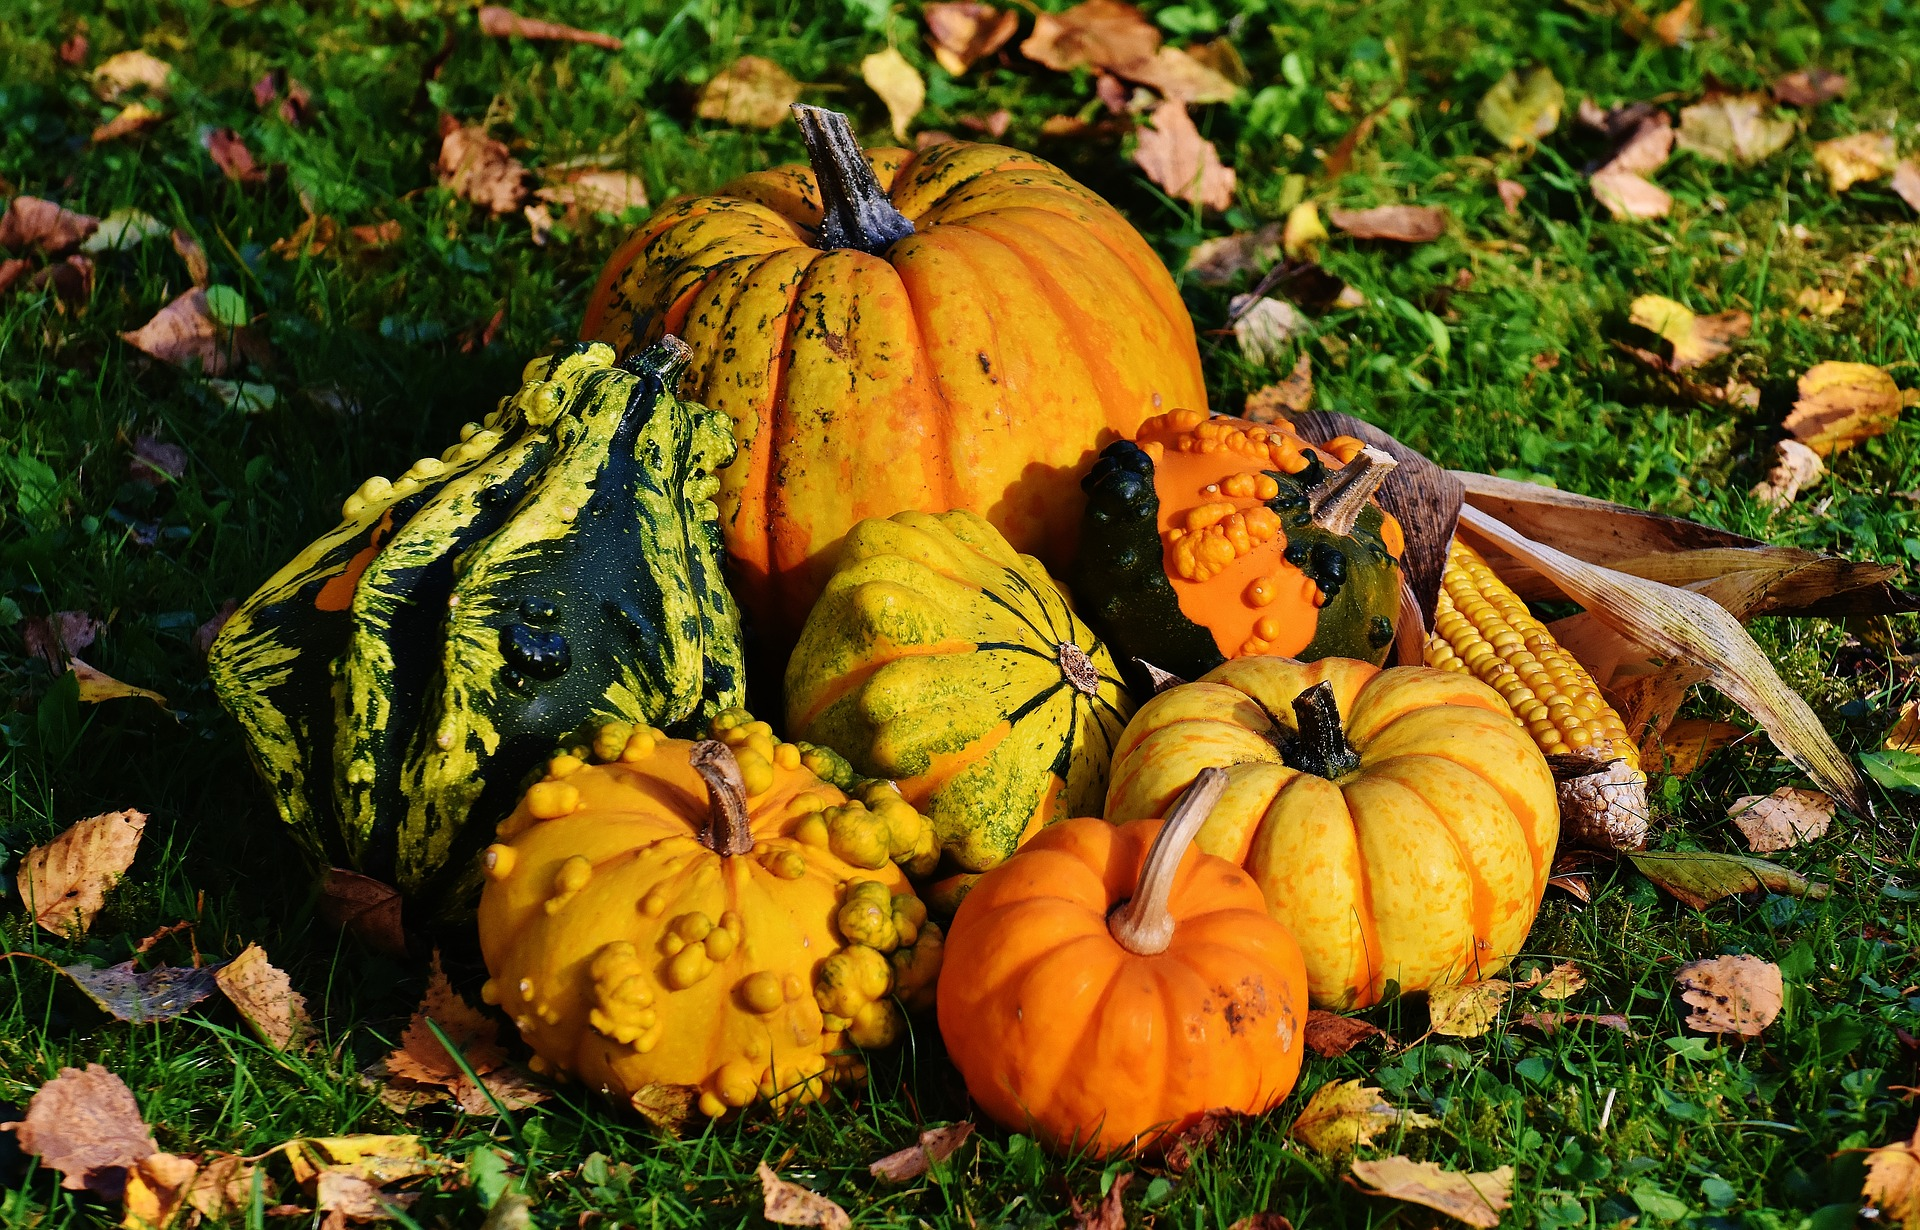 Buttercup, Turban, Lakota, Carnival: The Health Benefits of Lesser Known Fall Squash (Including Recipes!)